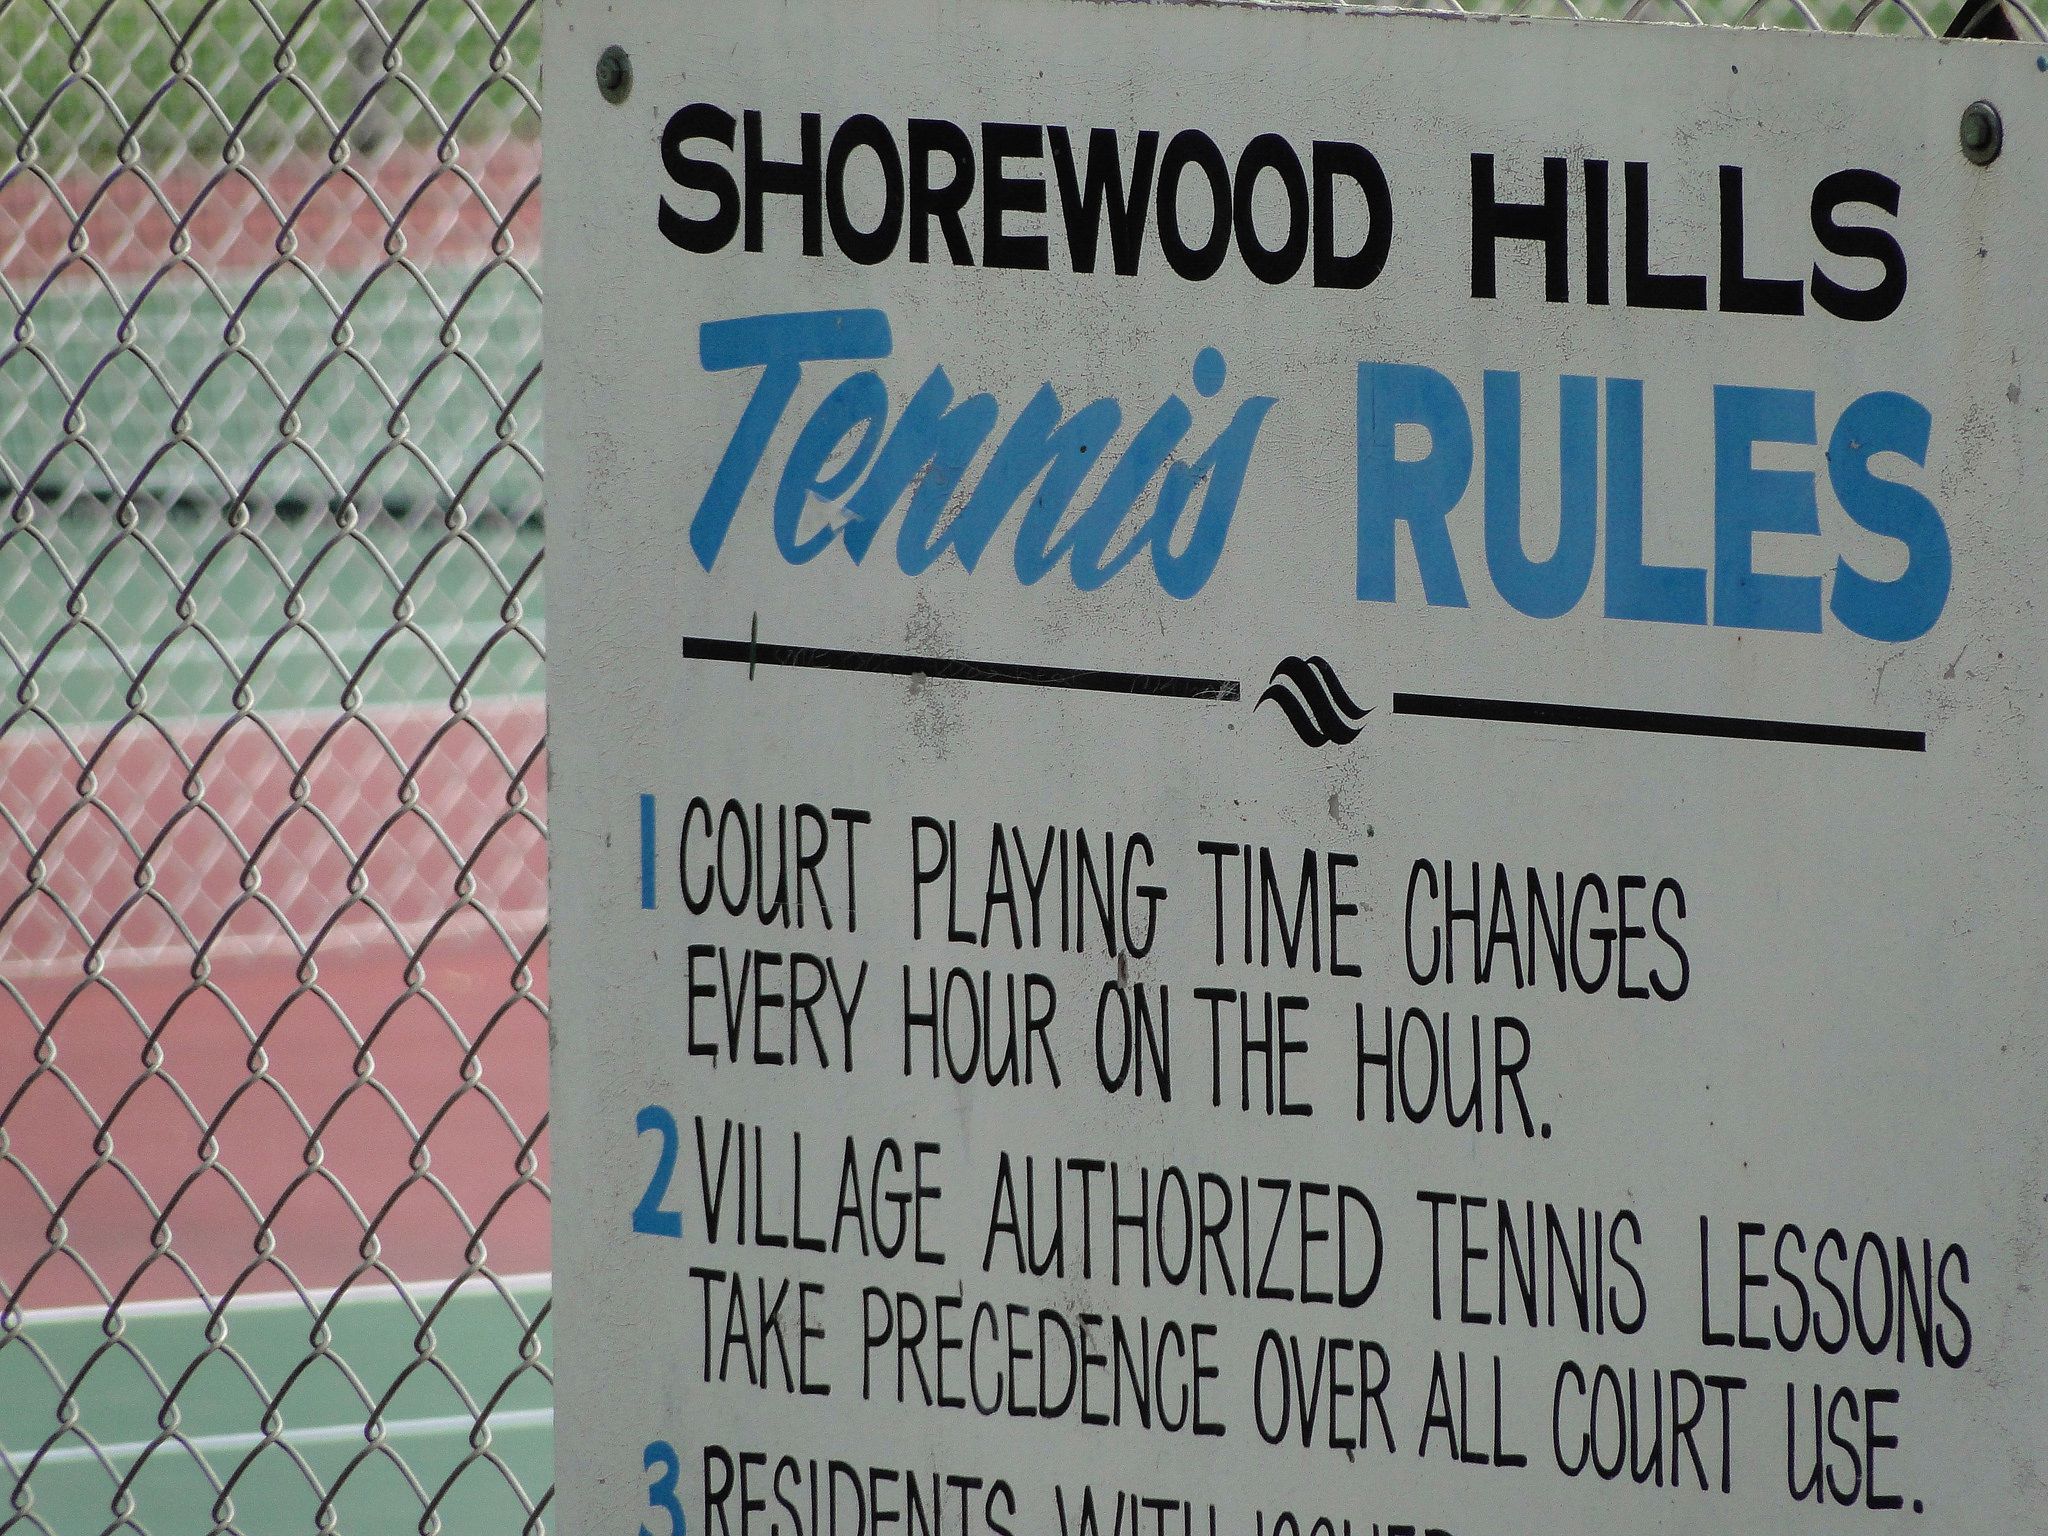 Shorewood Hills Tennis Courts